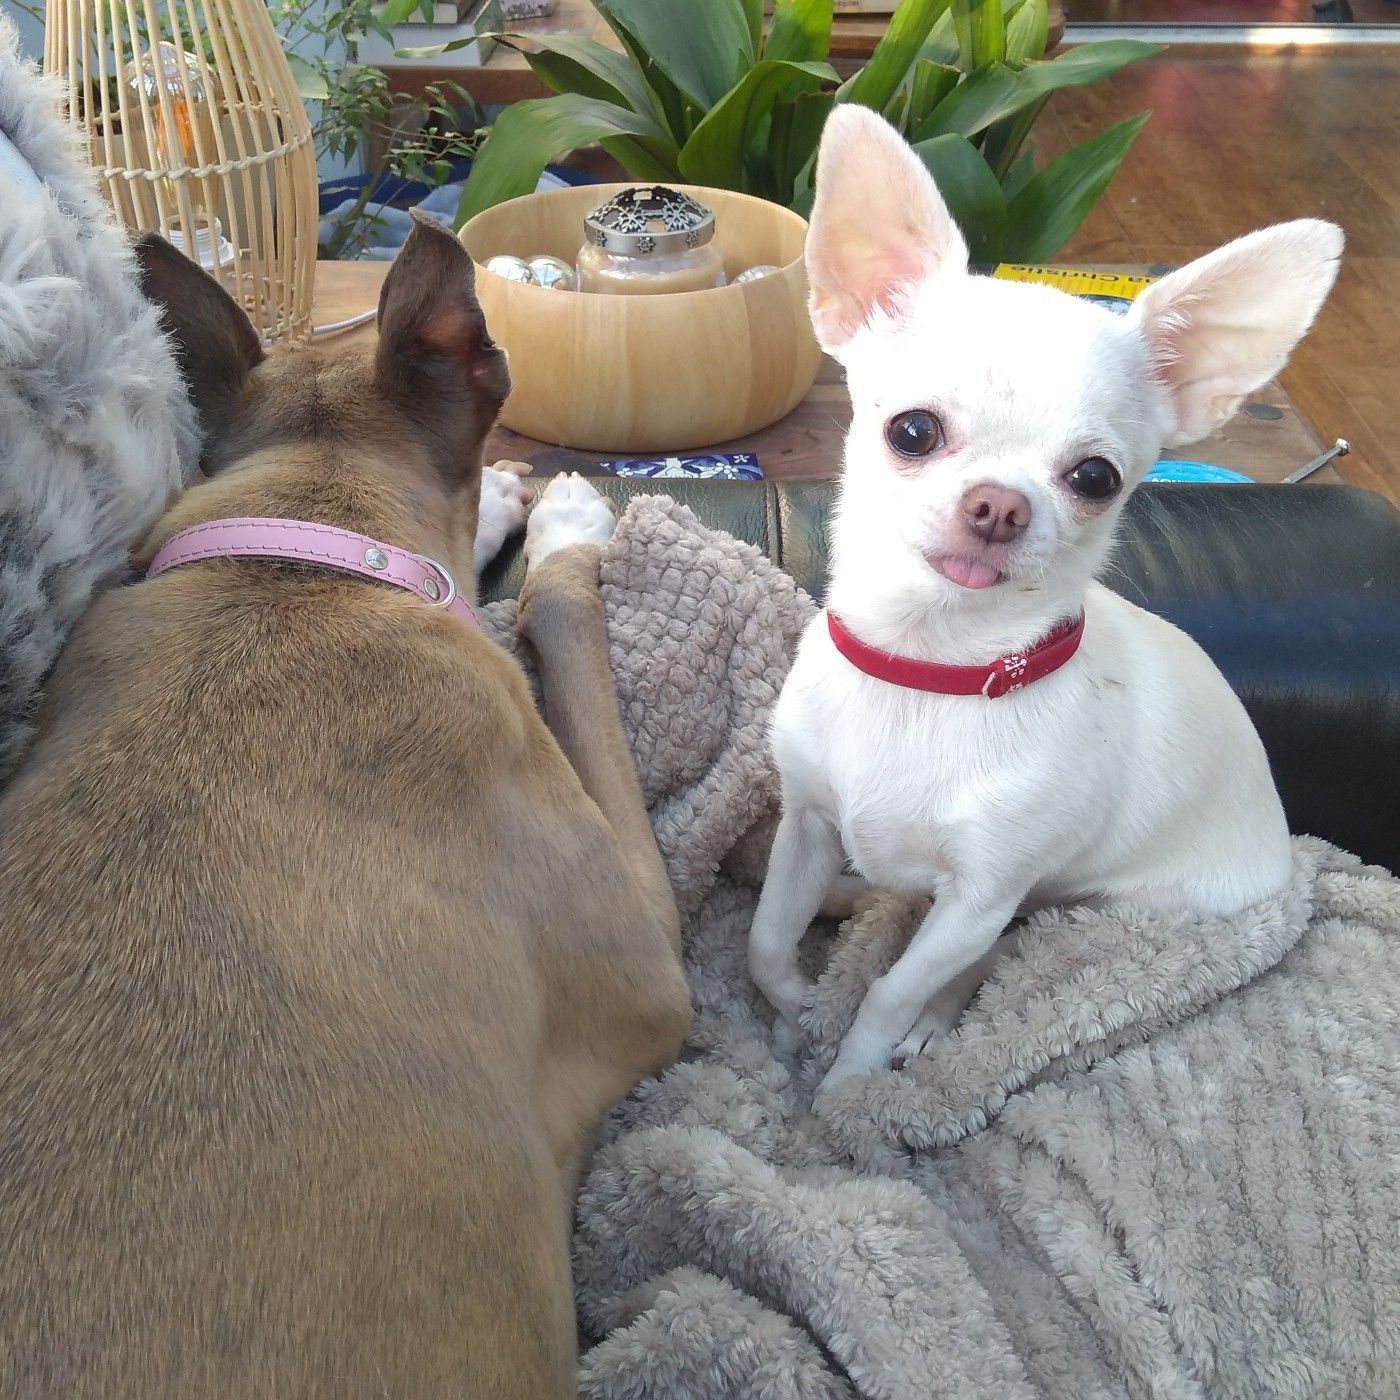 Bertie The Snow White Chihuahua Next To Mary The Fawn Whippet